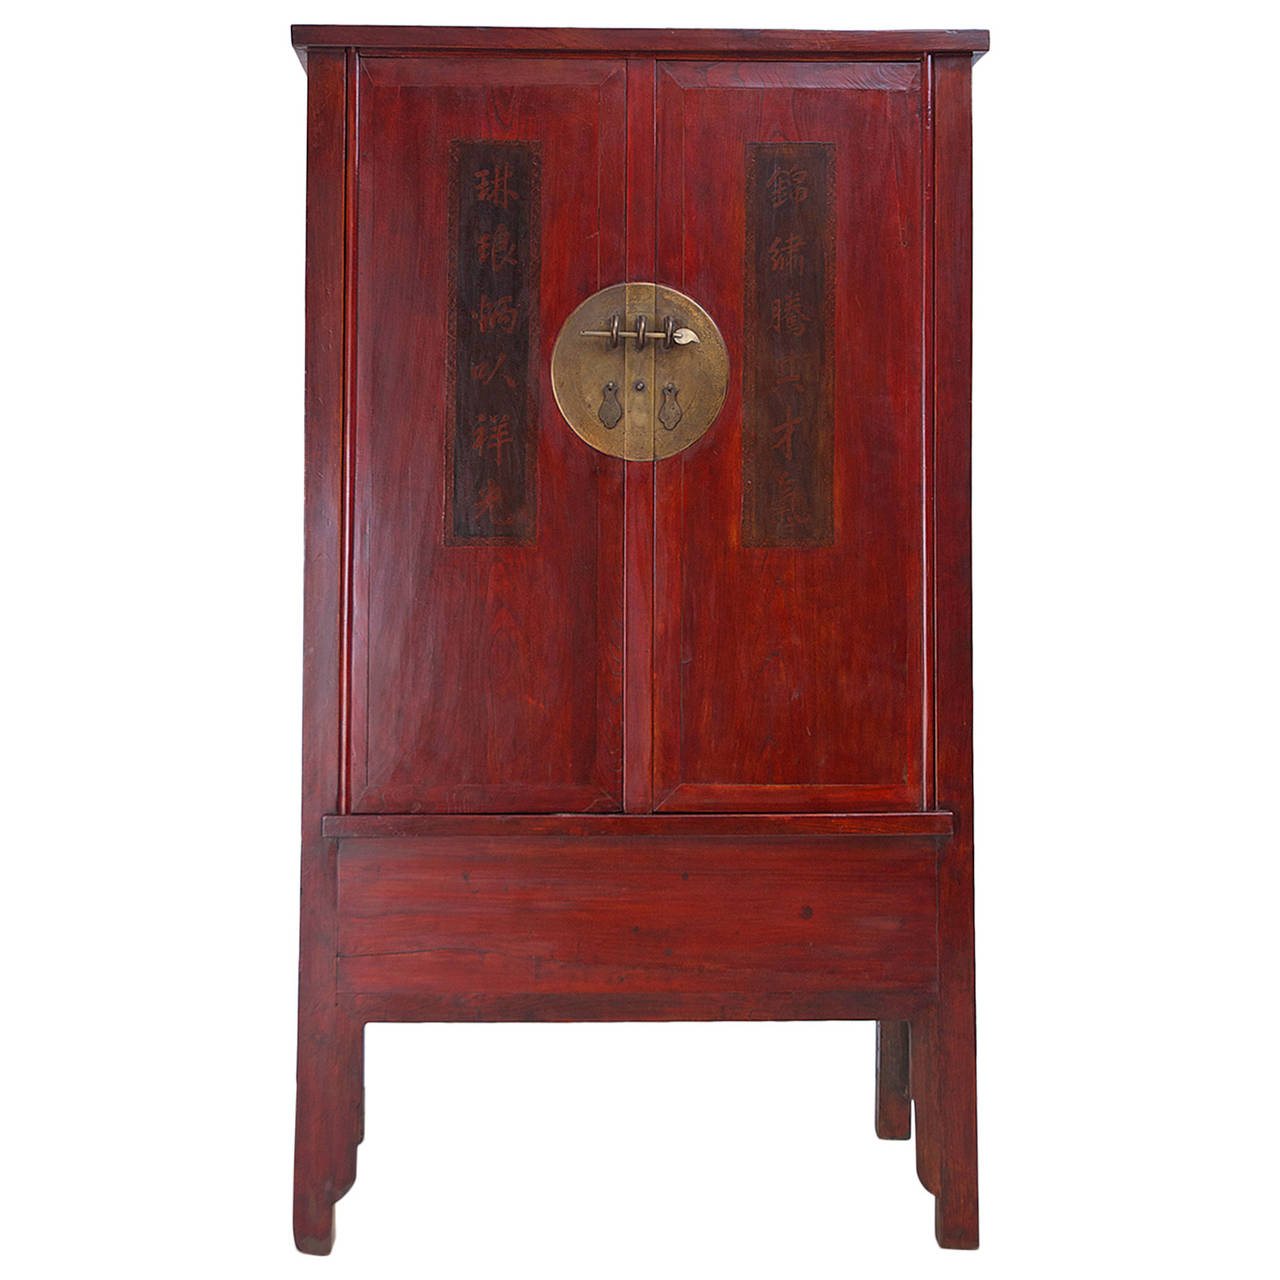 19th Century Red Lacquered Chinese Cabinet